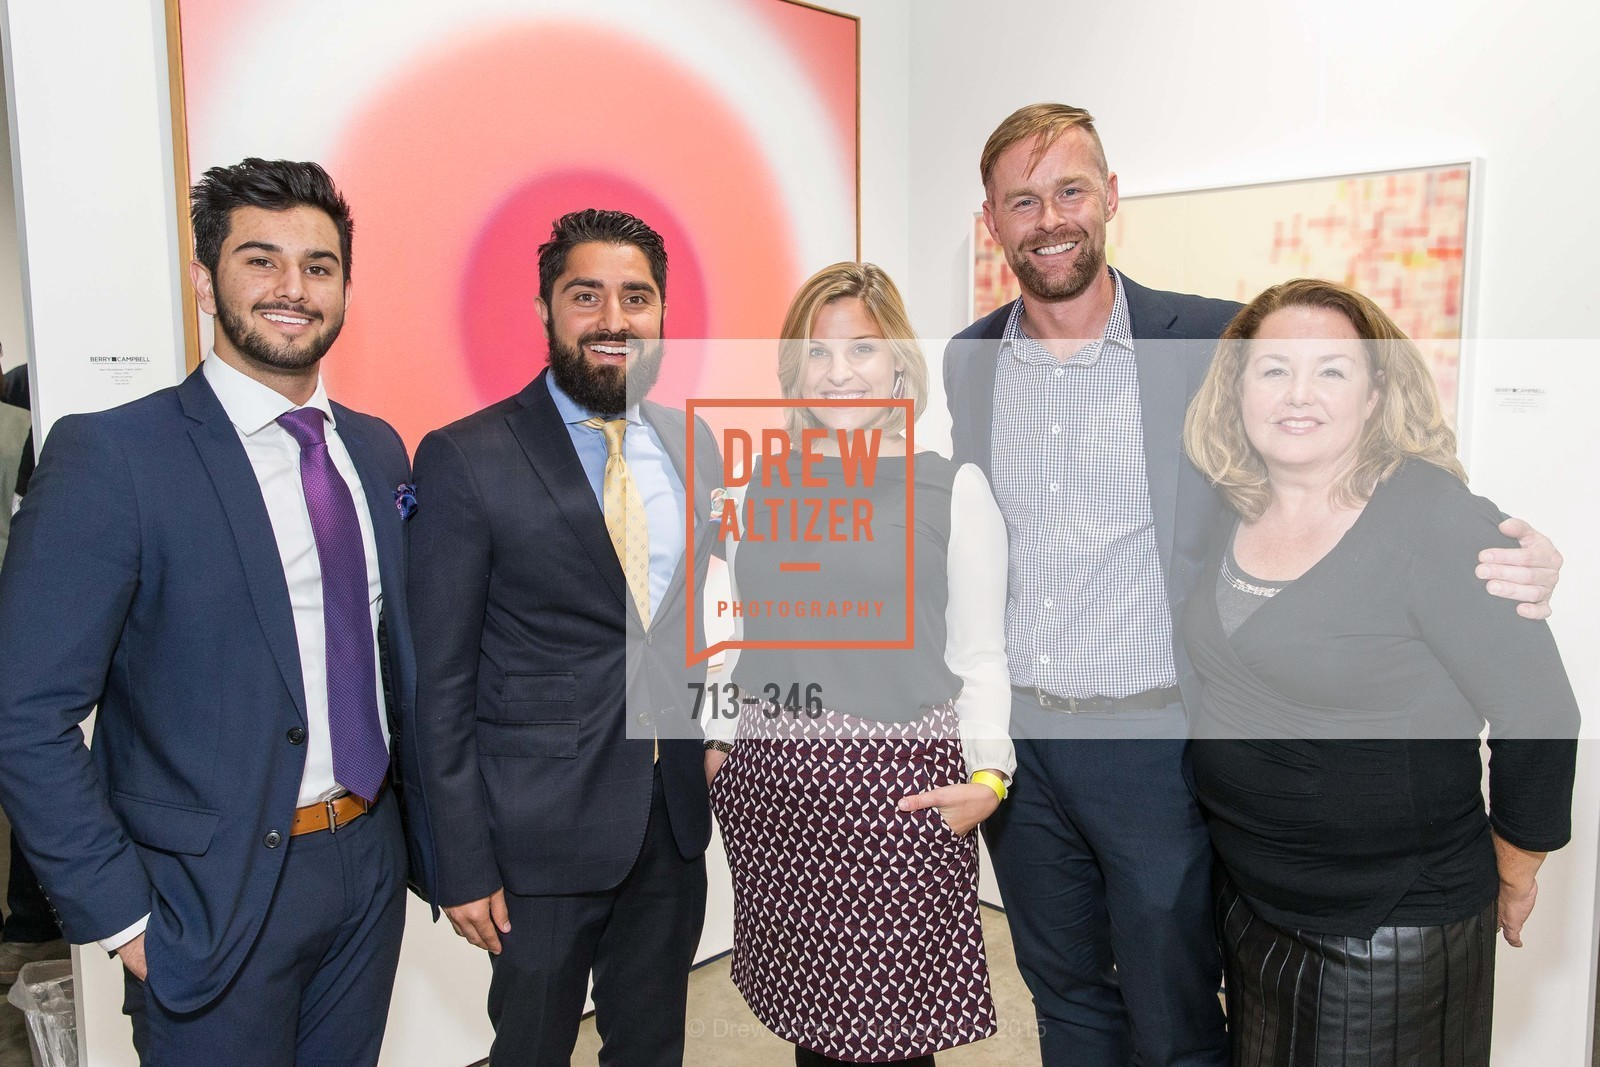 Obeid Habibi, Roh Habibi, Ashley Boarman, David Cumpston, Brianne Miller, Art Miami Presents: Art Silicon Valley, San Mateo County Event Center. 1346 Saratoga Dr, October 8th, 2015,Drew Altizer, Drew Altizer Photography, full-service agency, private events, San Francisco photographer, photographer california